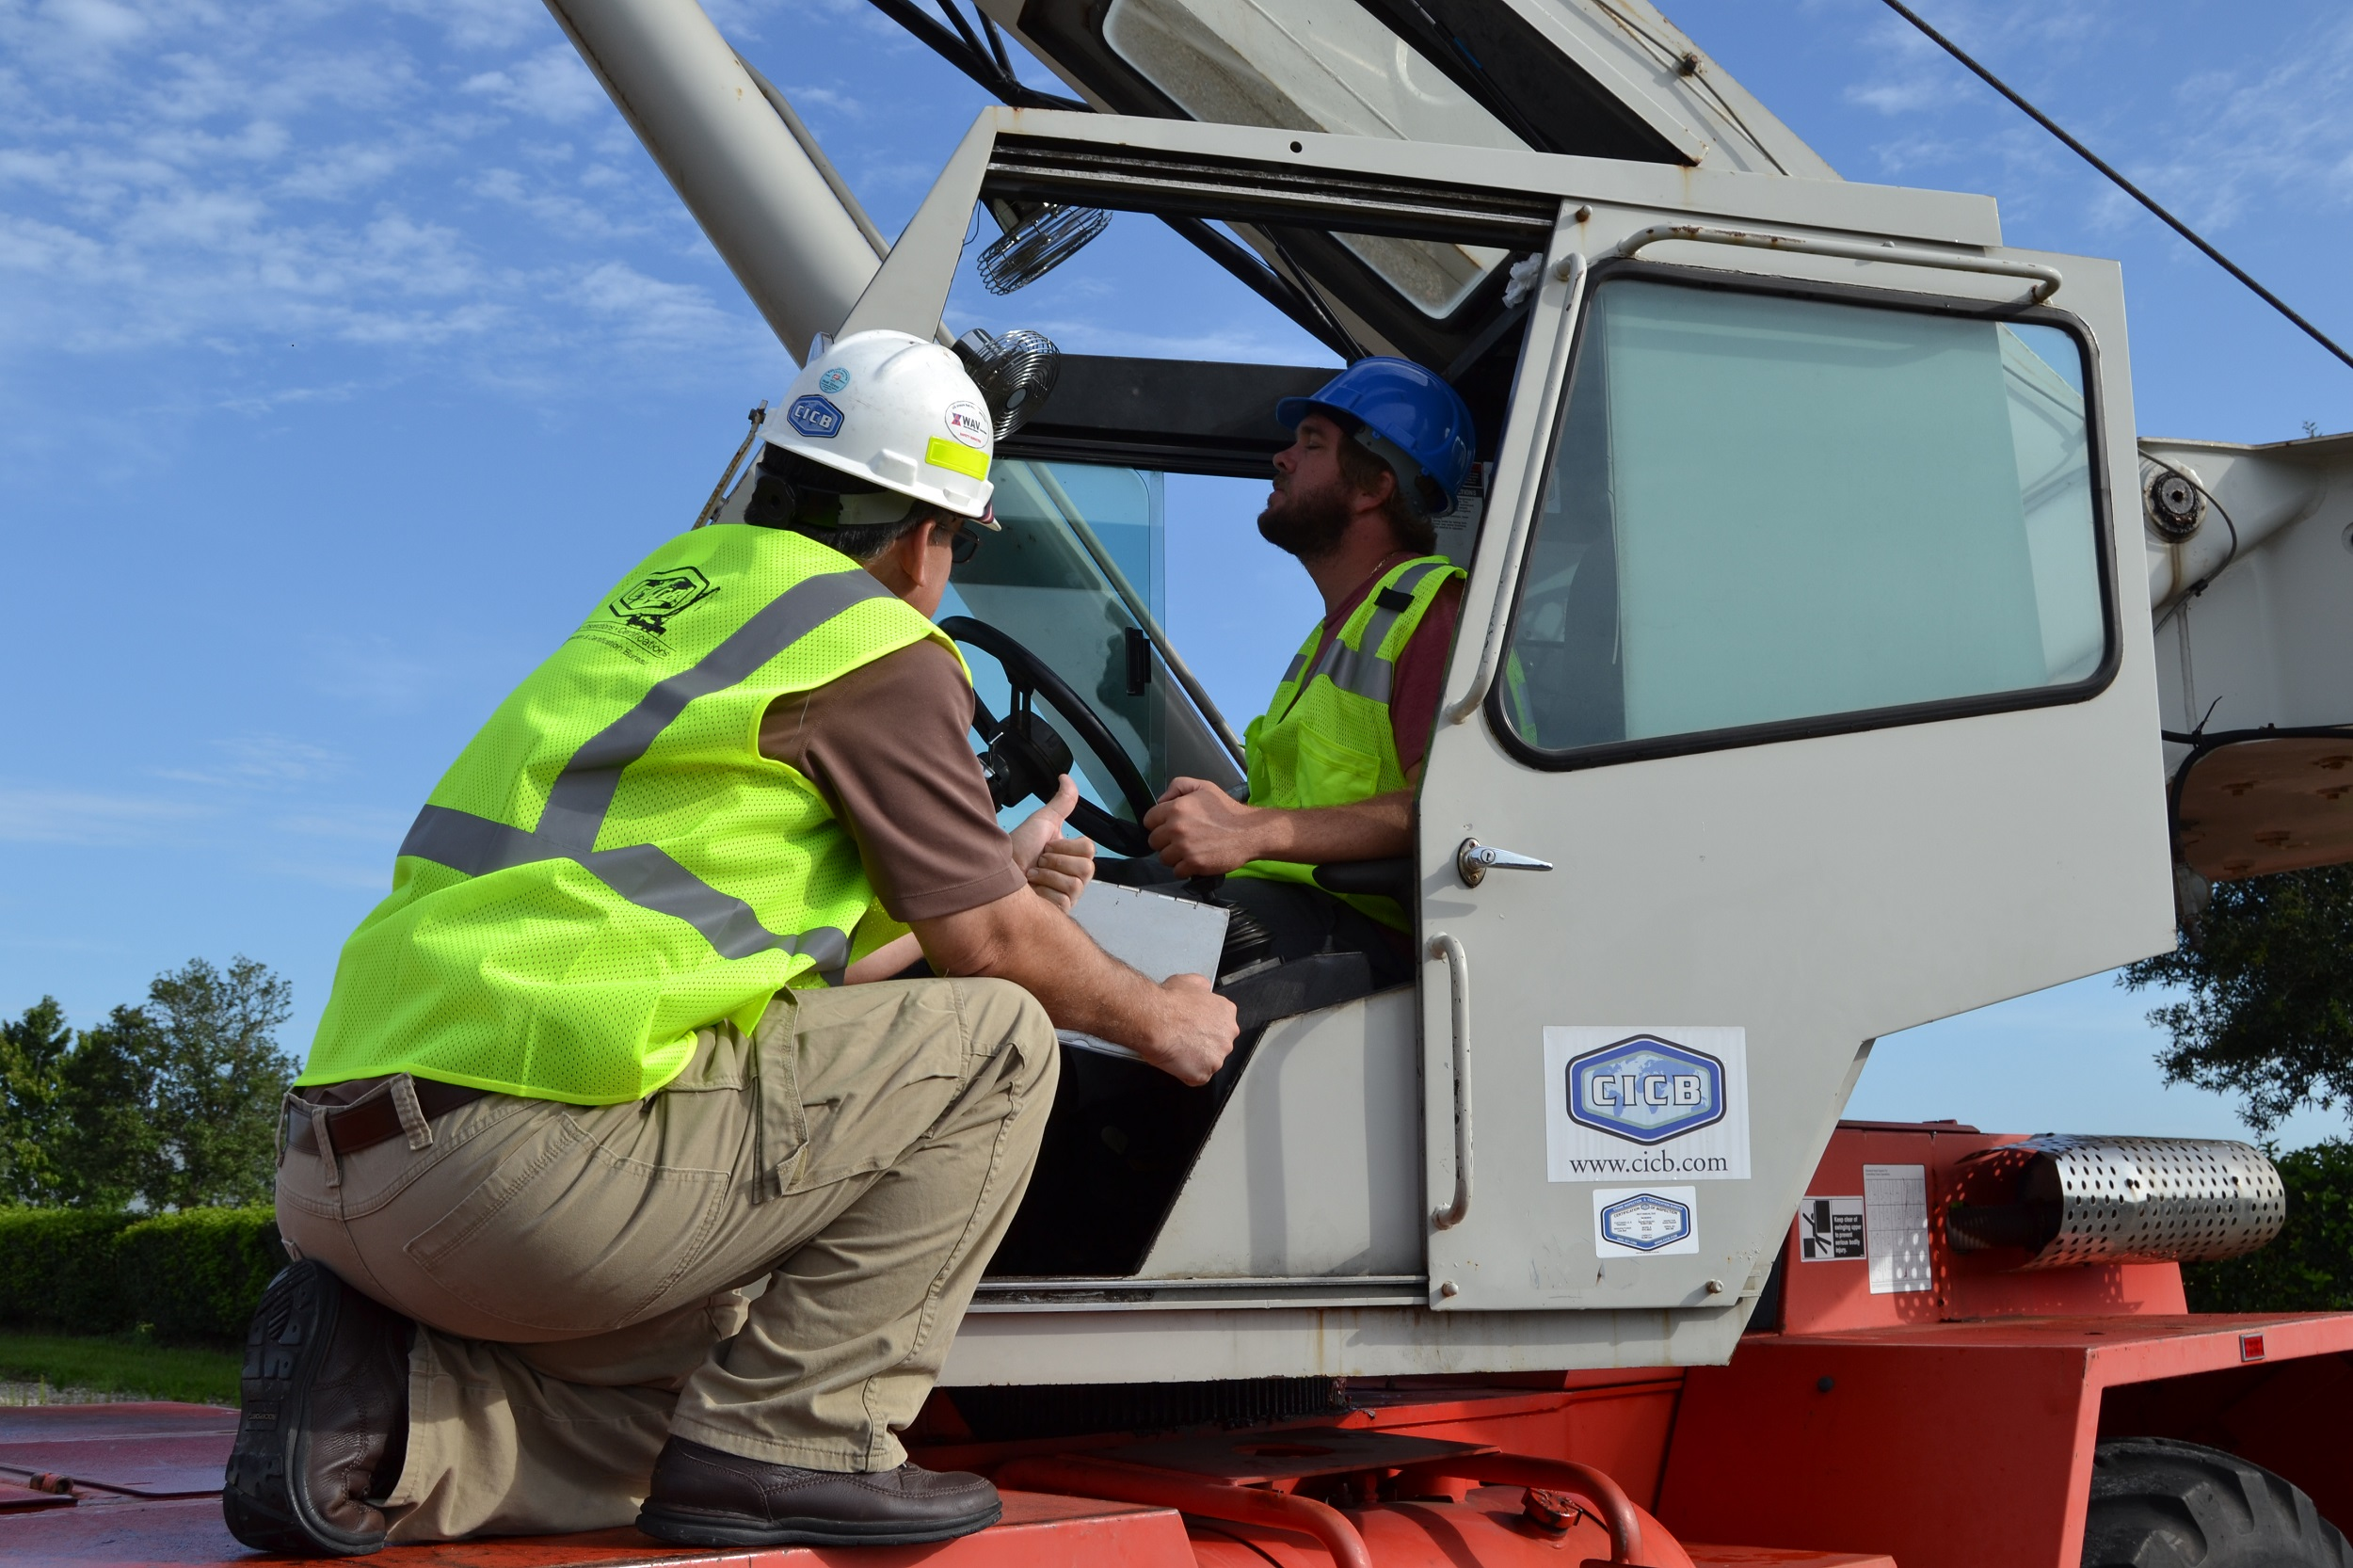 CICB Announces Crane Operator Certification Training and